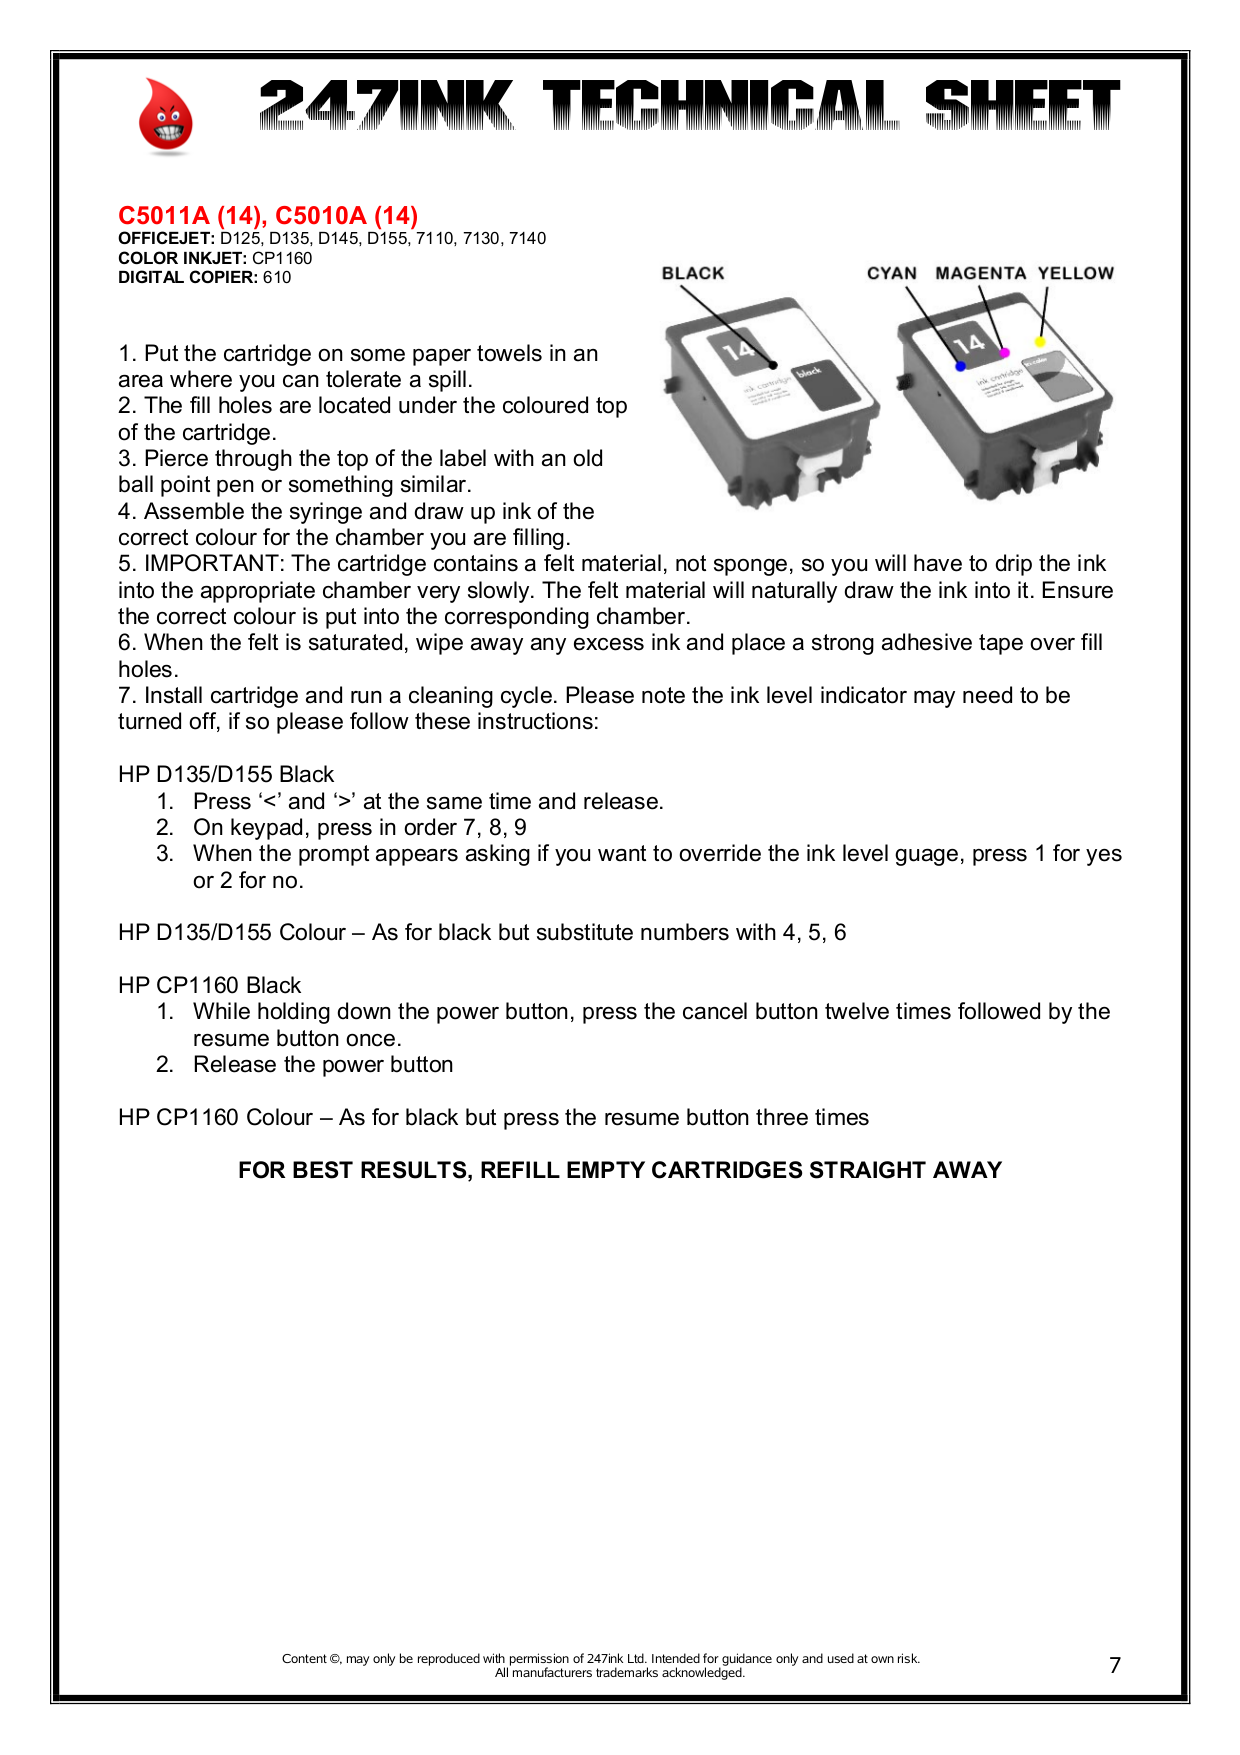 PDF manual for HP Printer Deskjet 3325